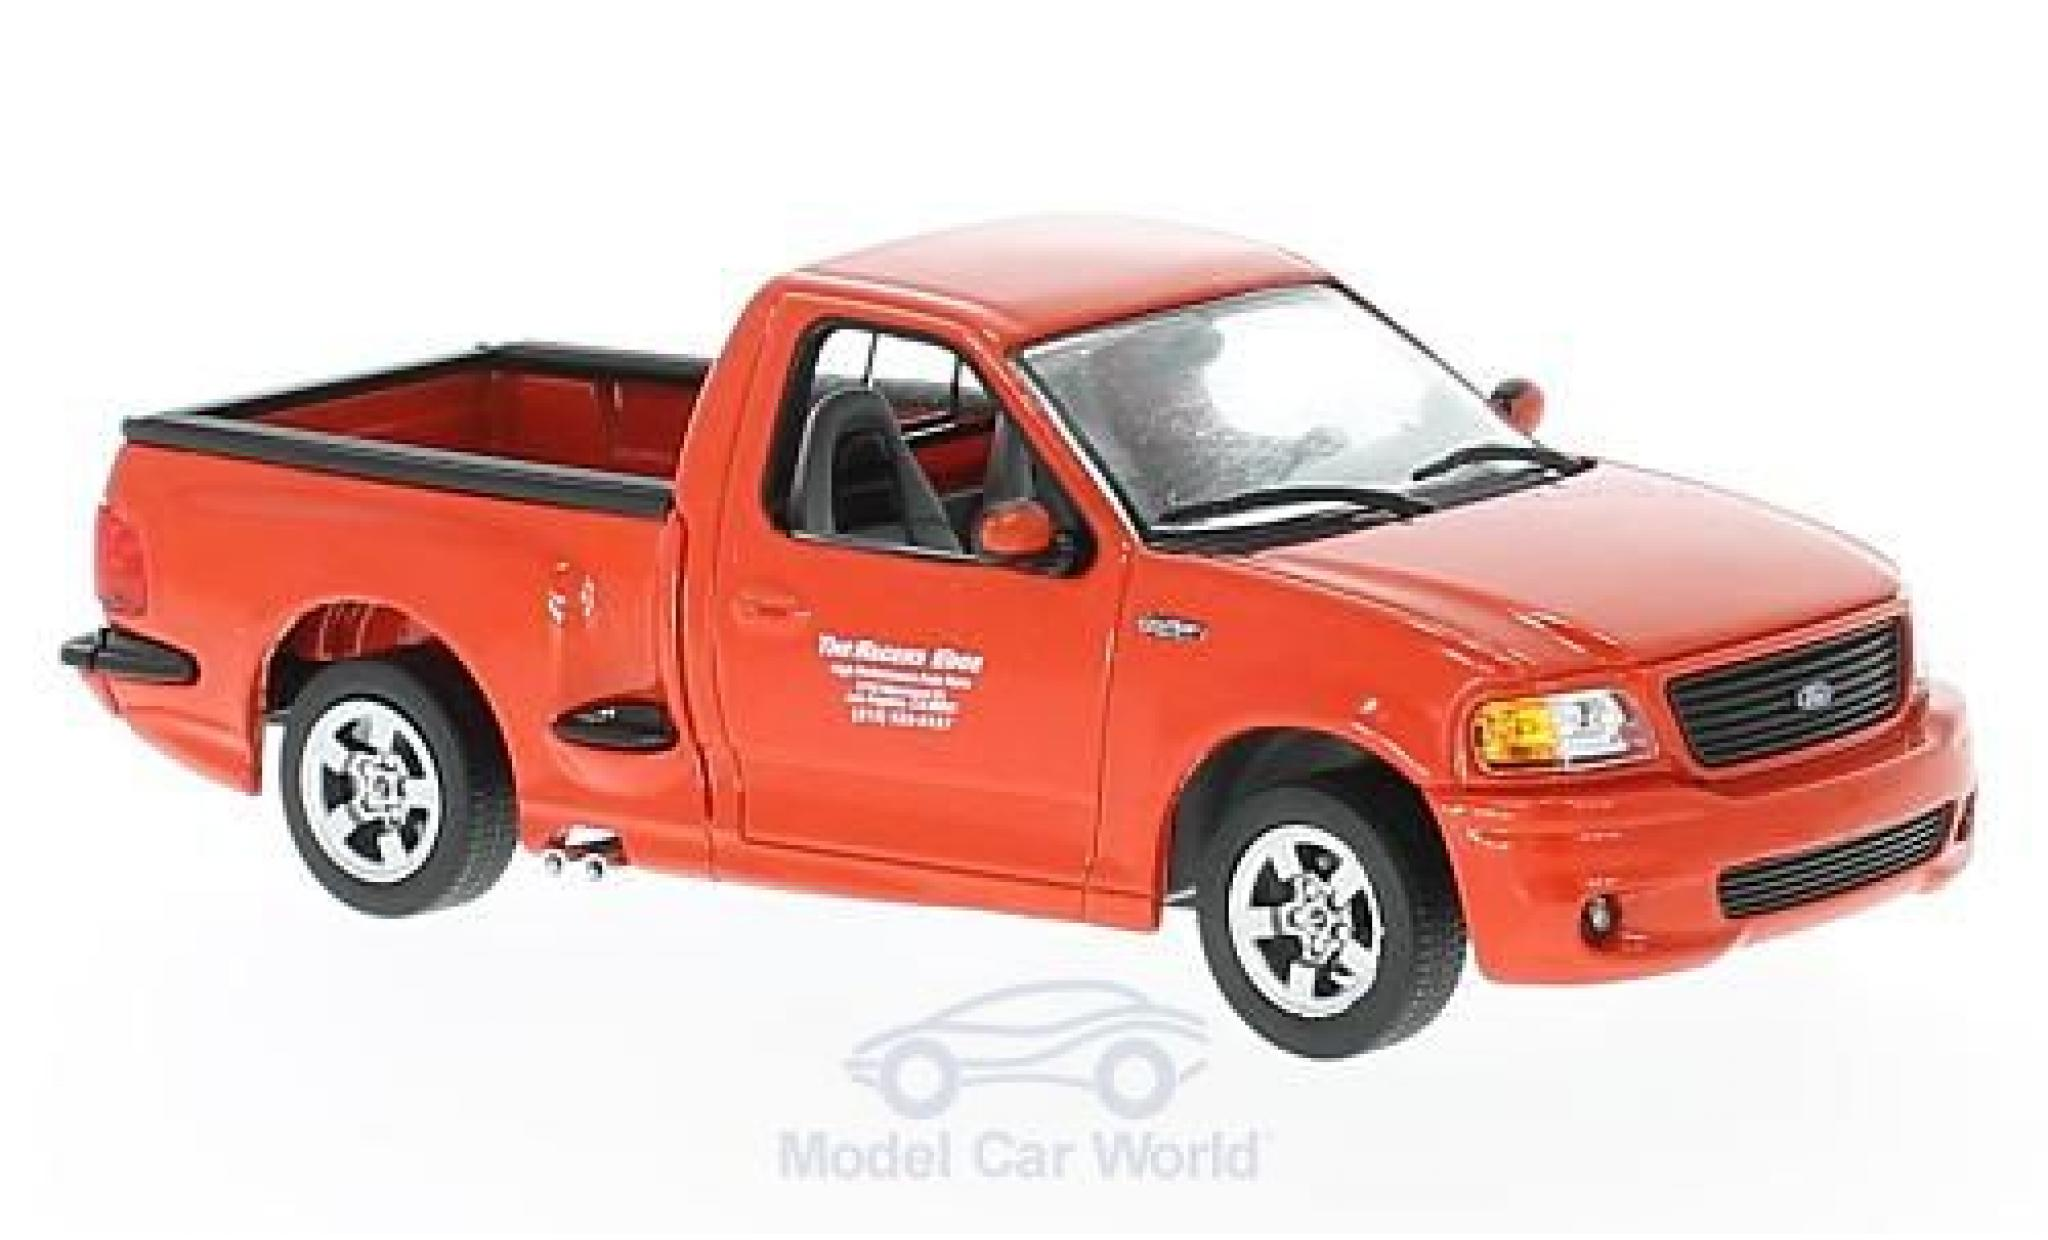 Ford F-1 1/43 Greenlight 50 SVT Lightning rosso Fast & Furious Brians 1999